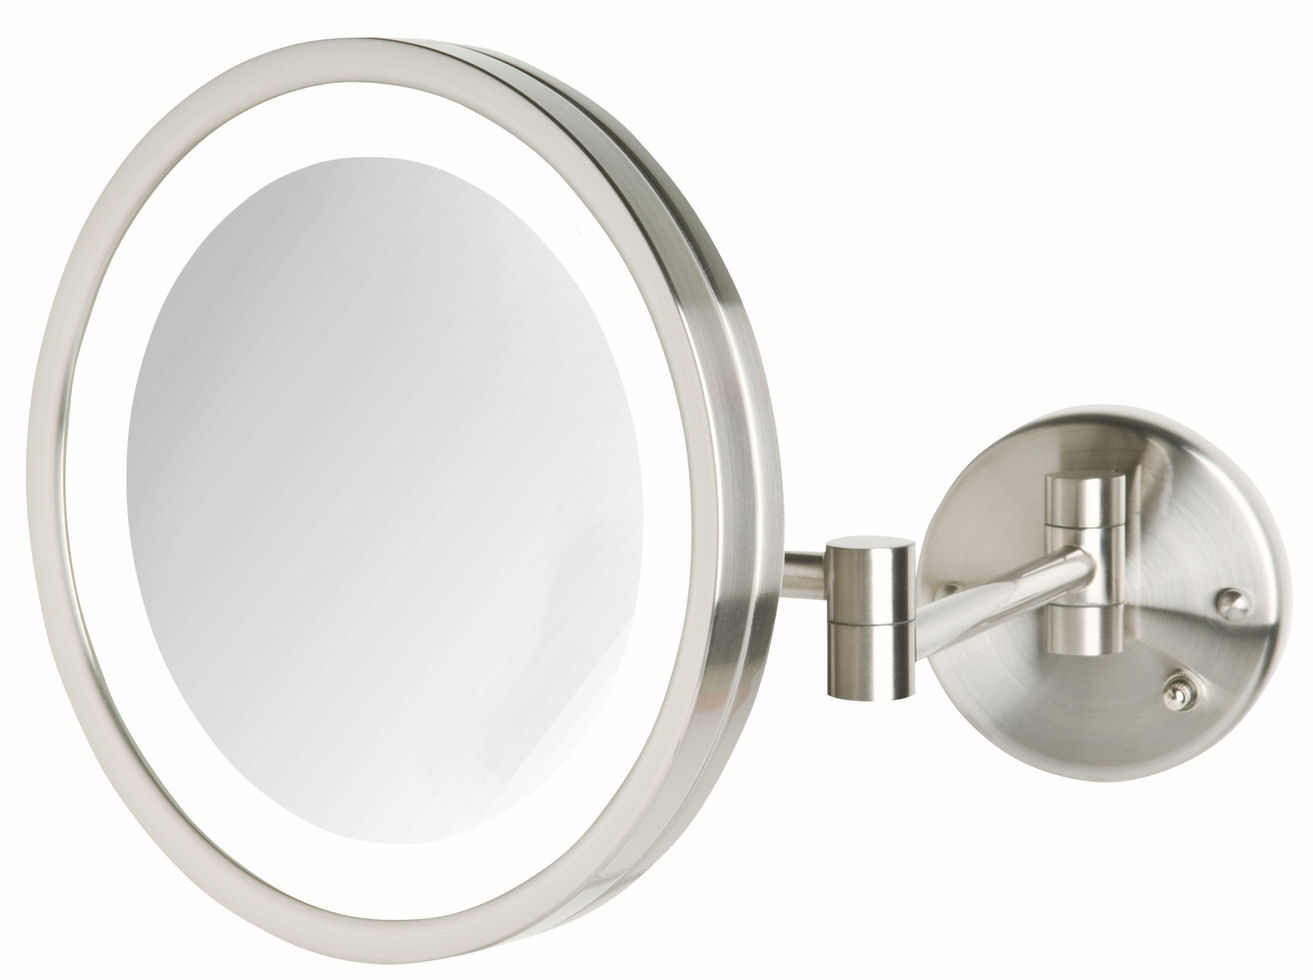 Wall Mounted Lighted Magnification Mirror Wall Mounted Lighted Magnification Mirror furniture lighted makeup mirror 10x magnifying mirror wall 1313 X 980